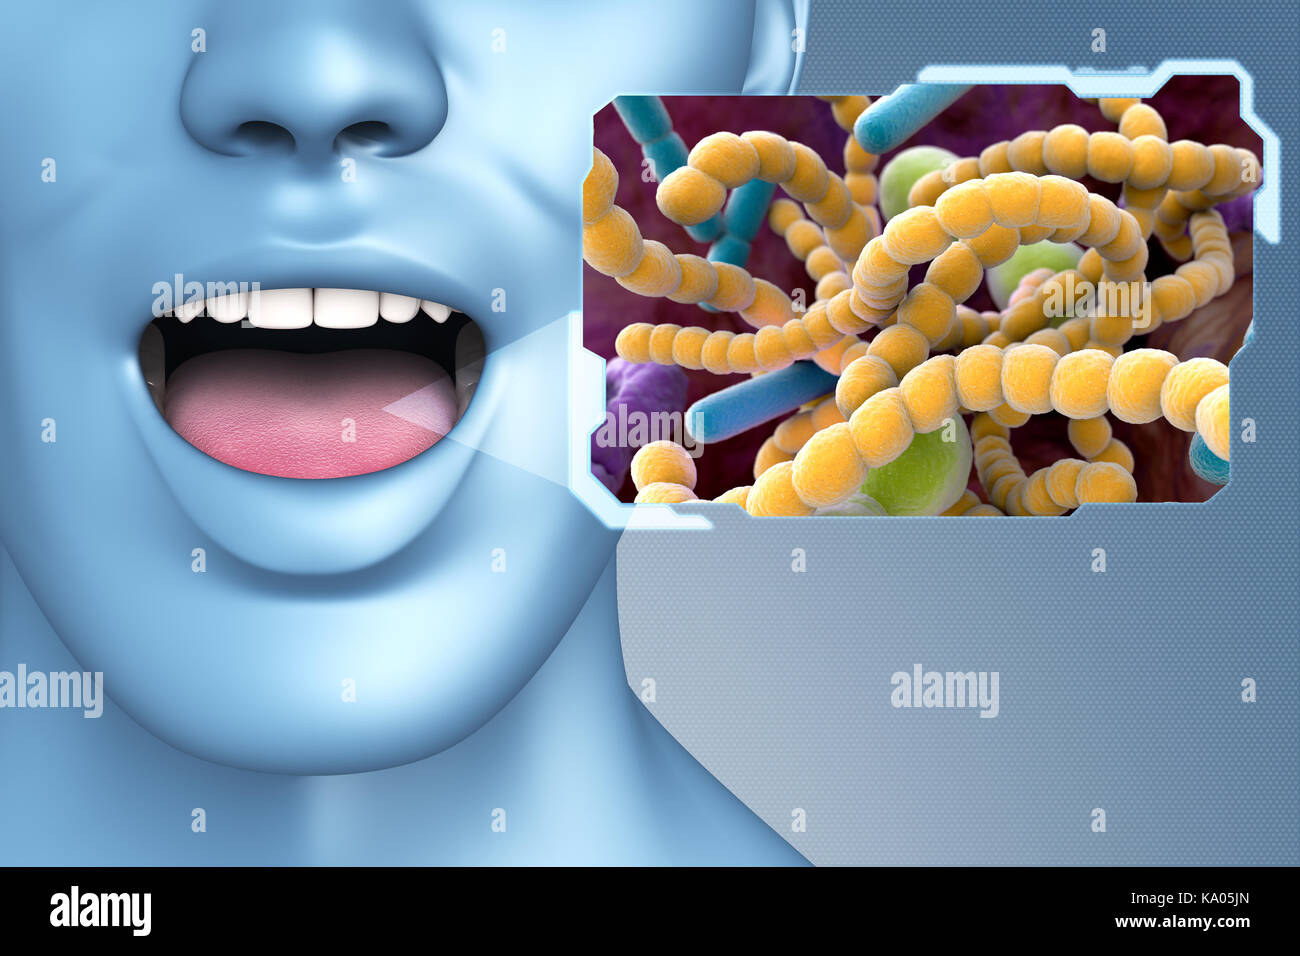 Halitosis Bacteria found in the mouth which can cause halitosis or bad breath. 3D illustration - Stock Image